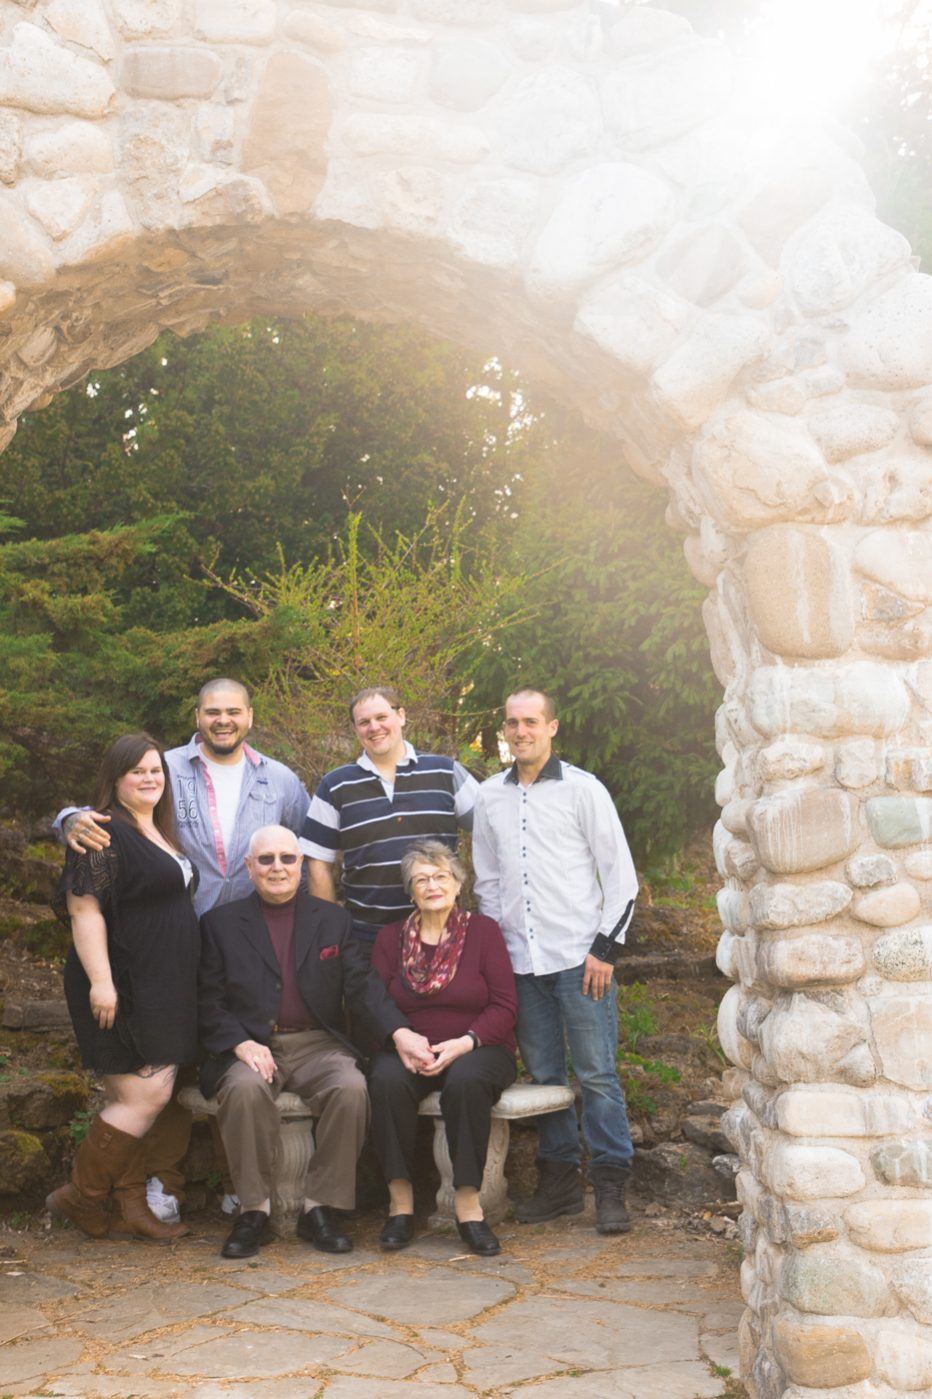 Family photo shoot in the sun under a stone arch.